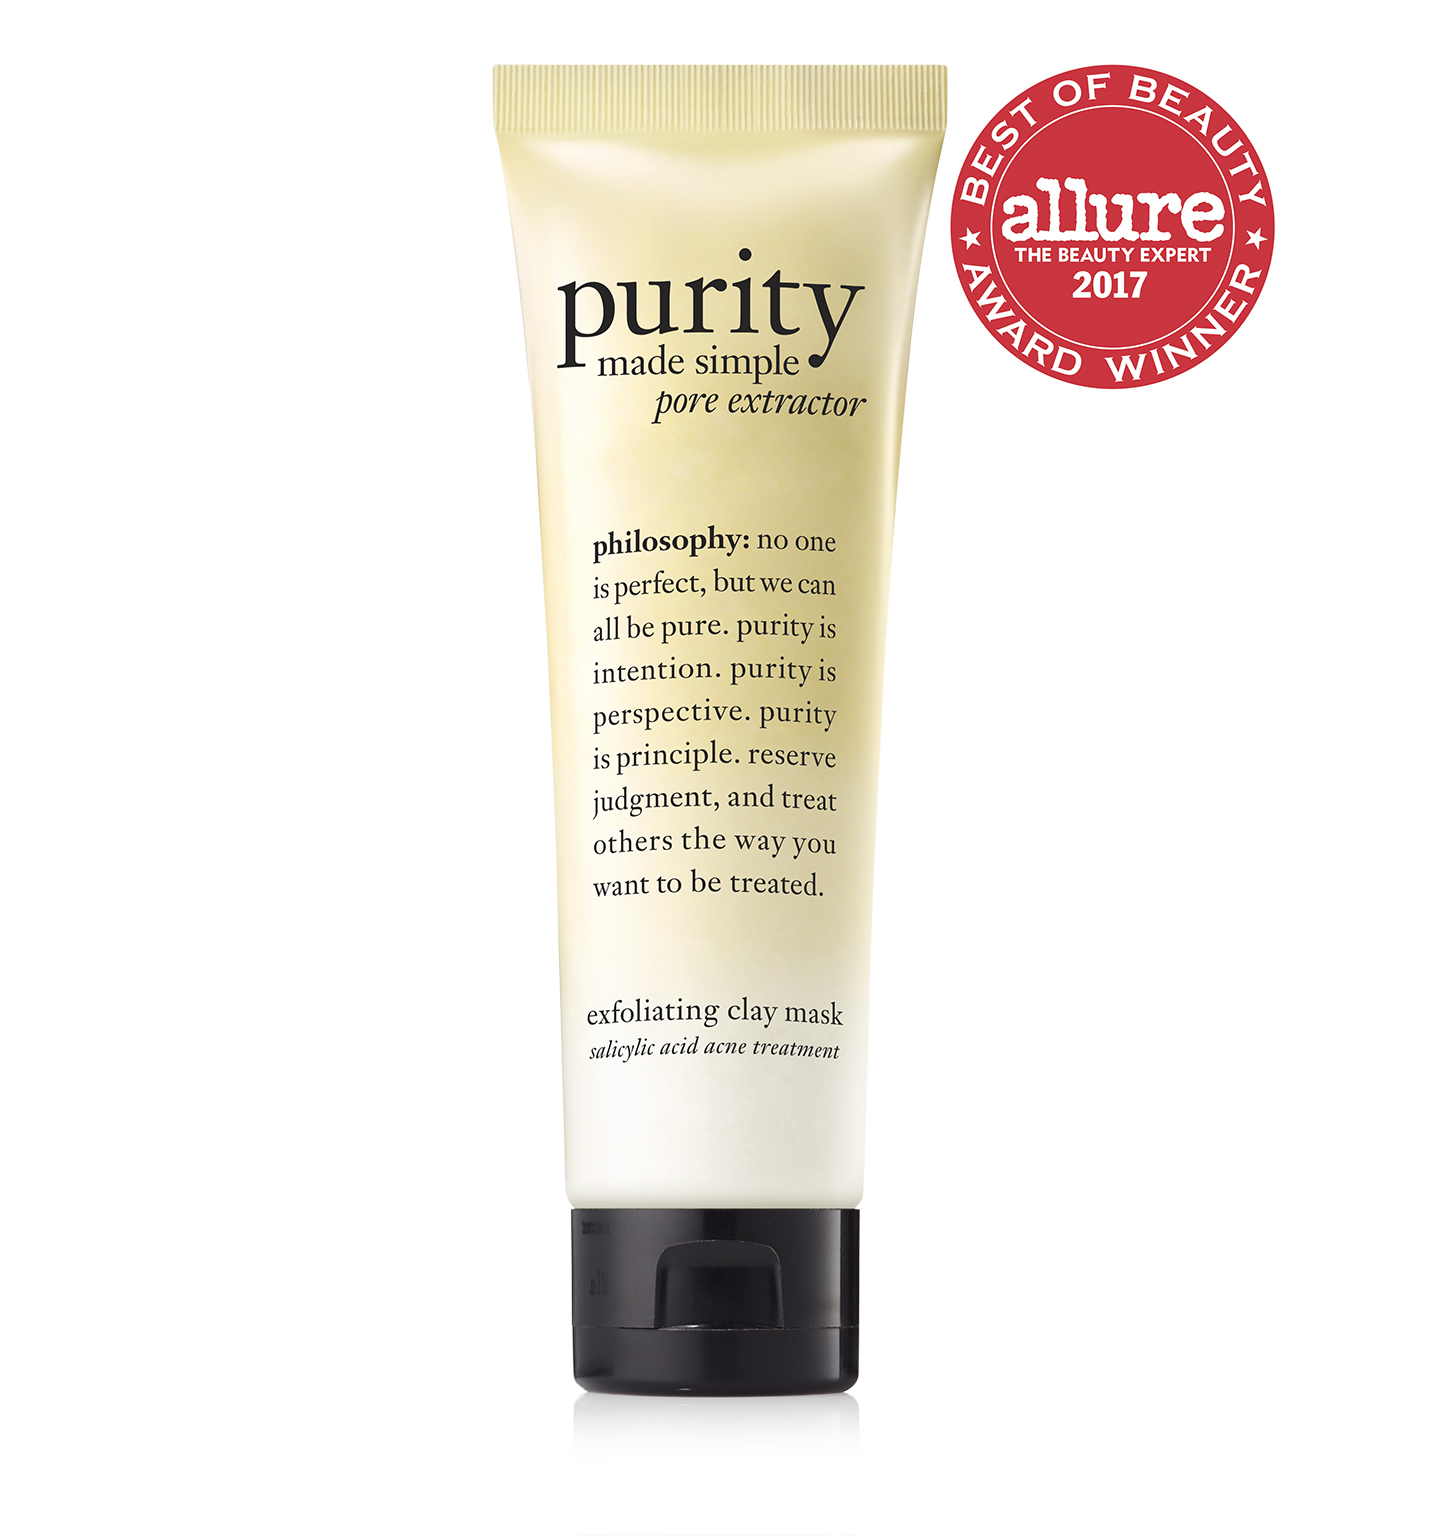 Pore Extractor Face Mask by Philosophy